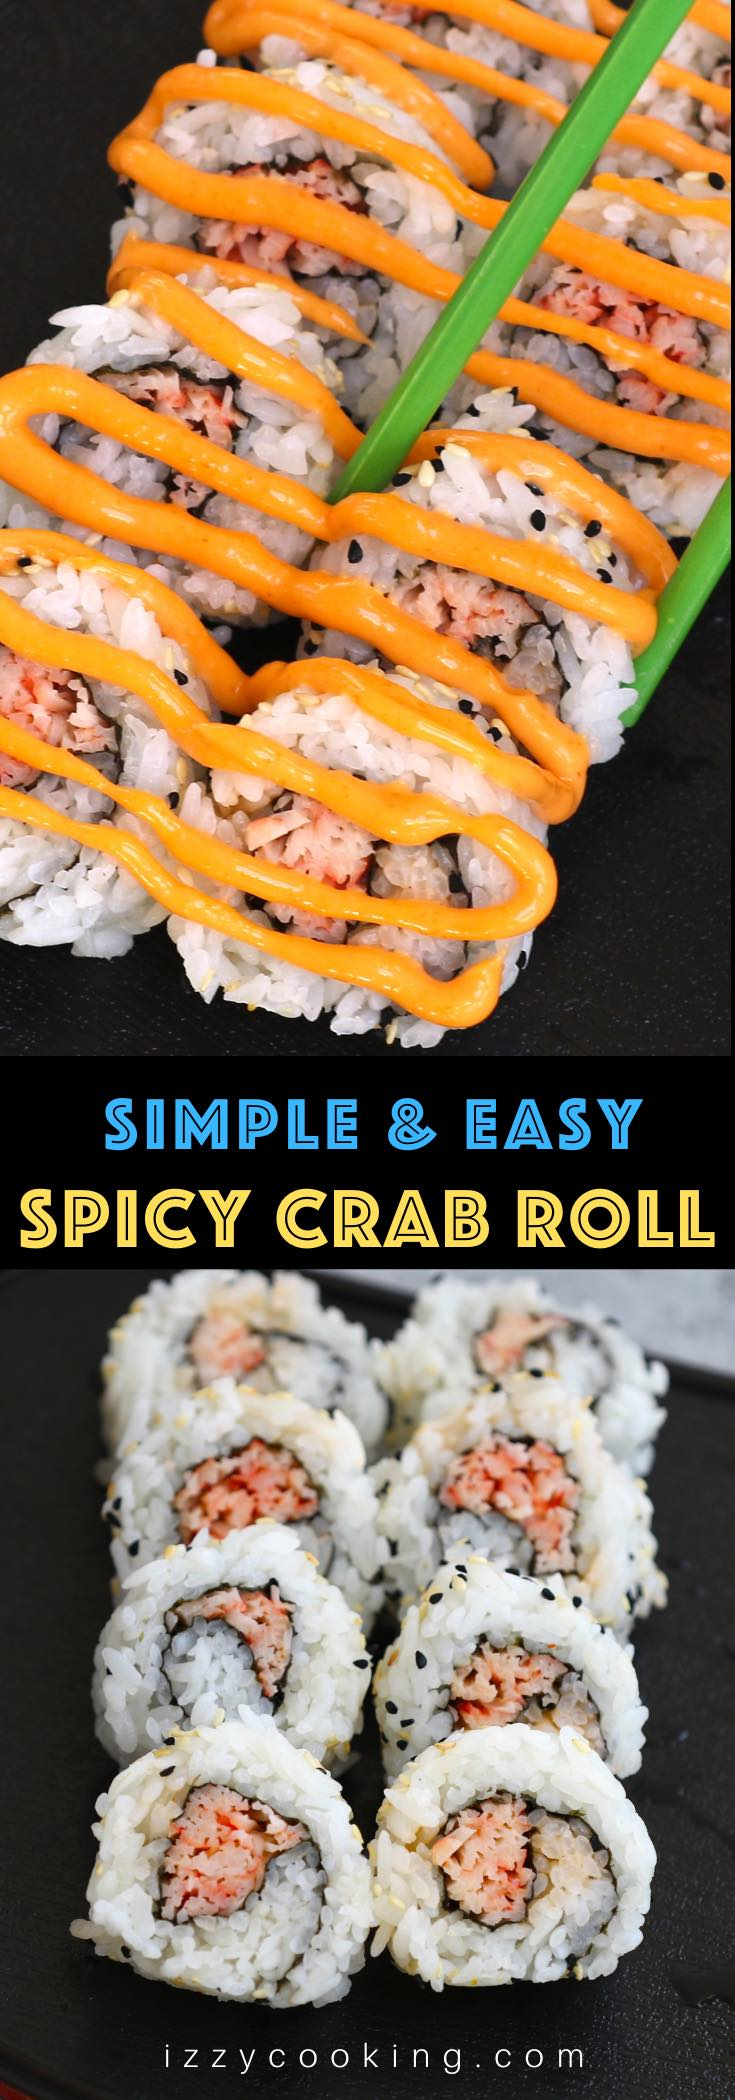 Spicy Crab Roll is a popular Japanese sushi roll – creamy, satisfying, and fiery spicy. The kani crab stick is shredded and then seasoned with sriracha spicy mayo, then wrapped in nori seaweed sheets and seasoned rice. These simple sushi rolls take about 15 minutes to make once the sushi rice is ready. I'll share with you the secrets on how to roll perfect sushi with step-by-step photos. #SpicyCrabRoll #SpicyKaniRoll